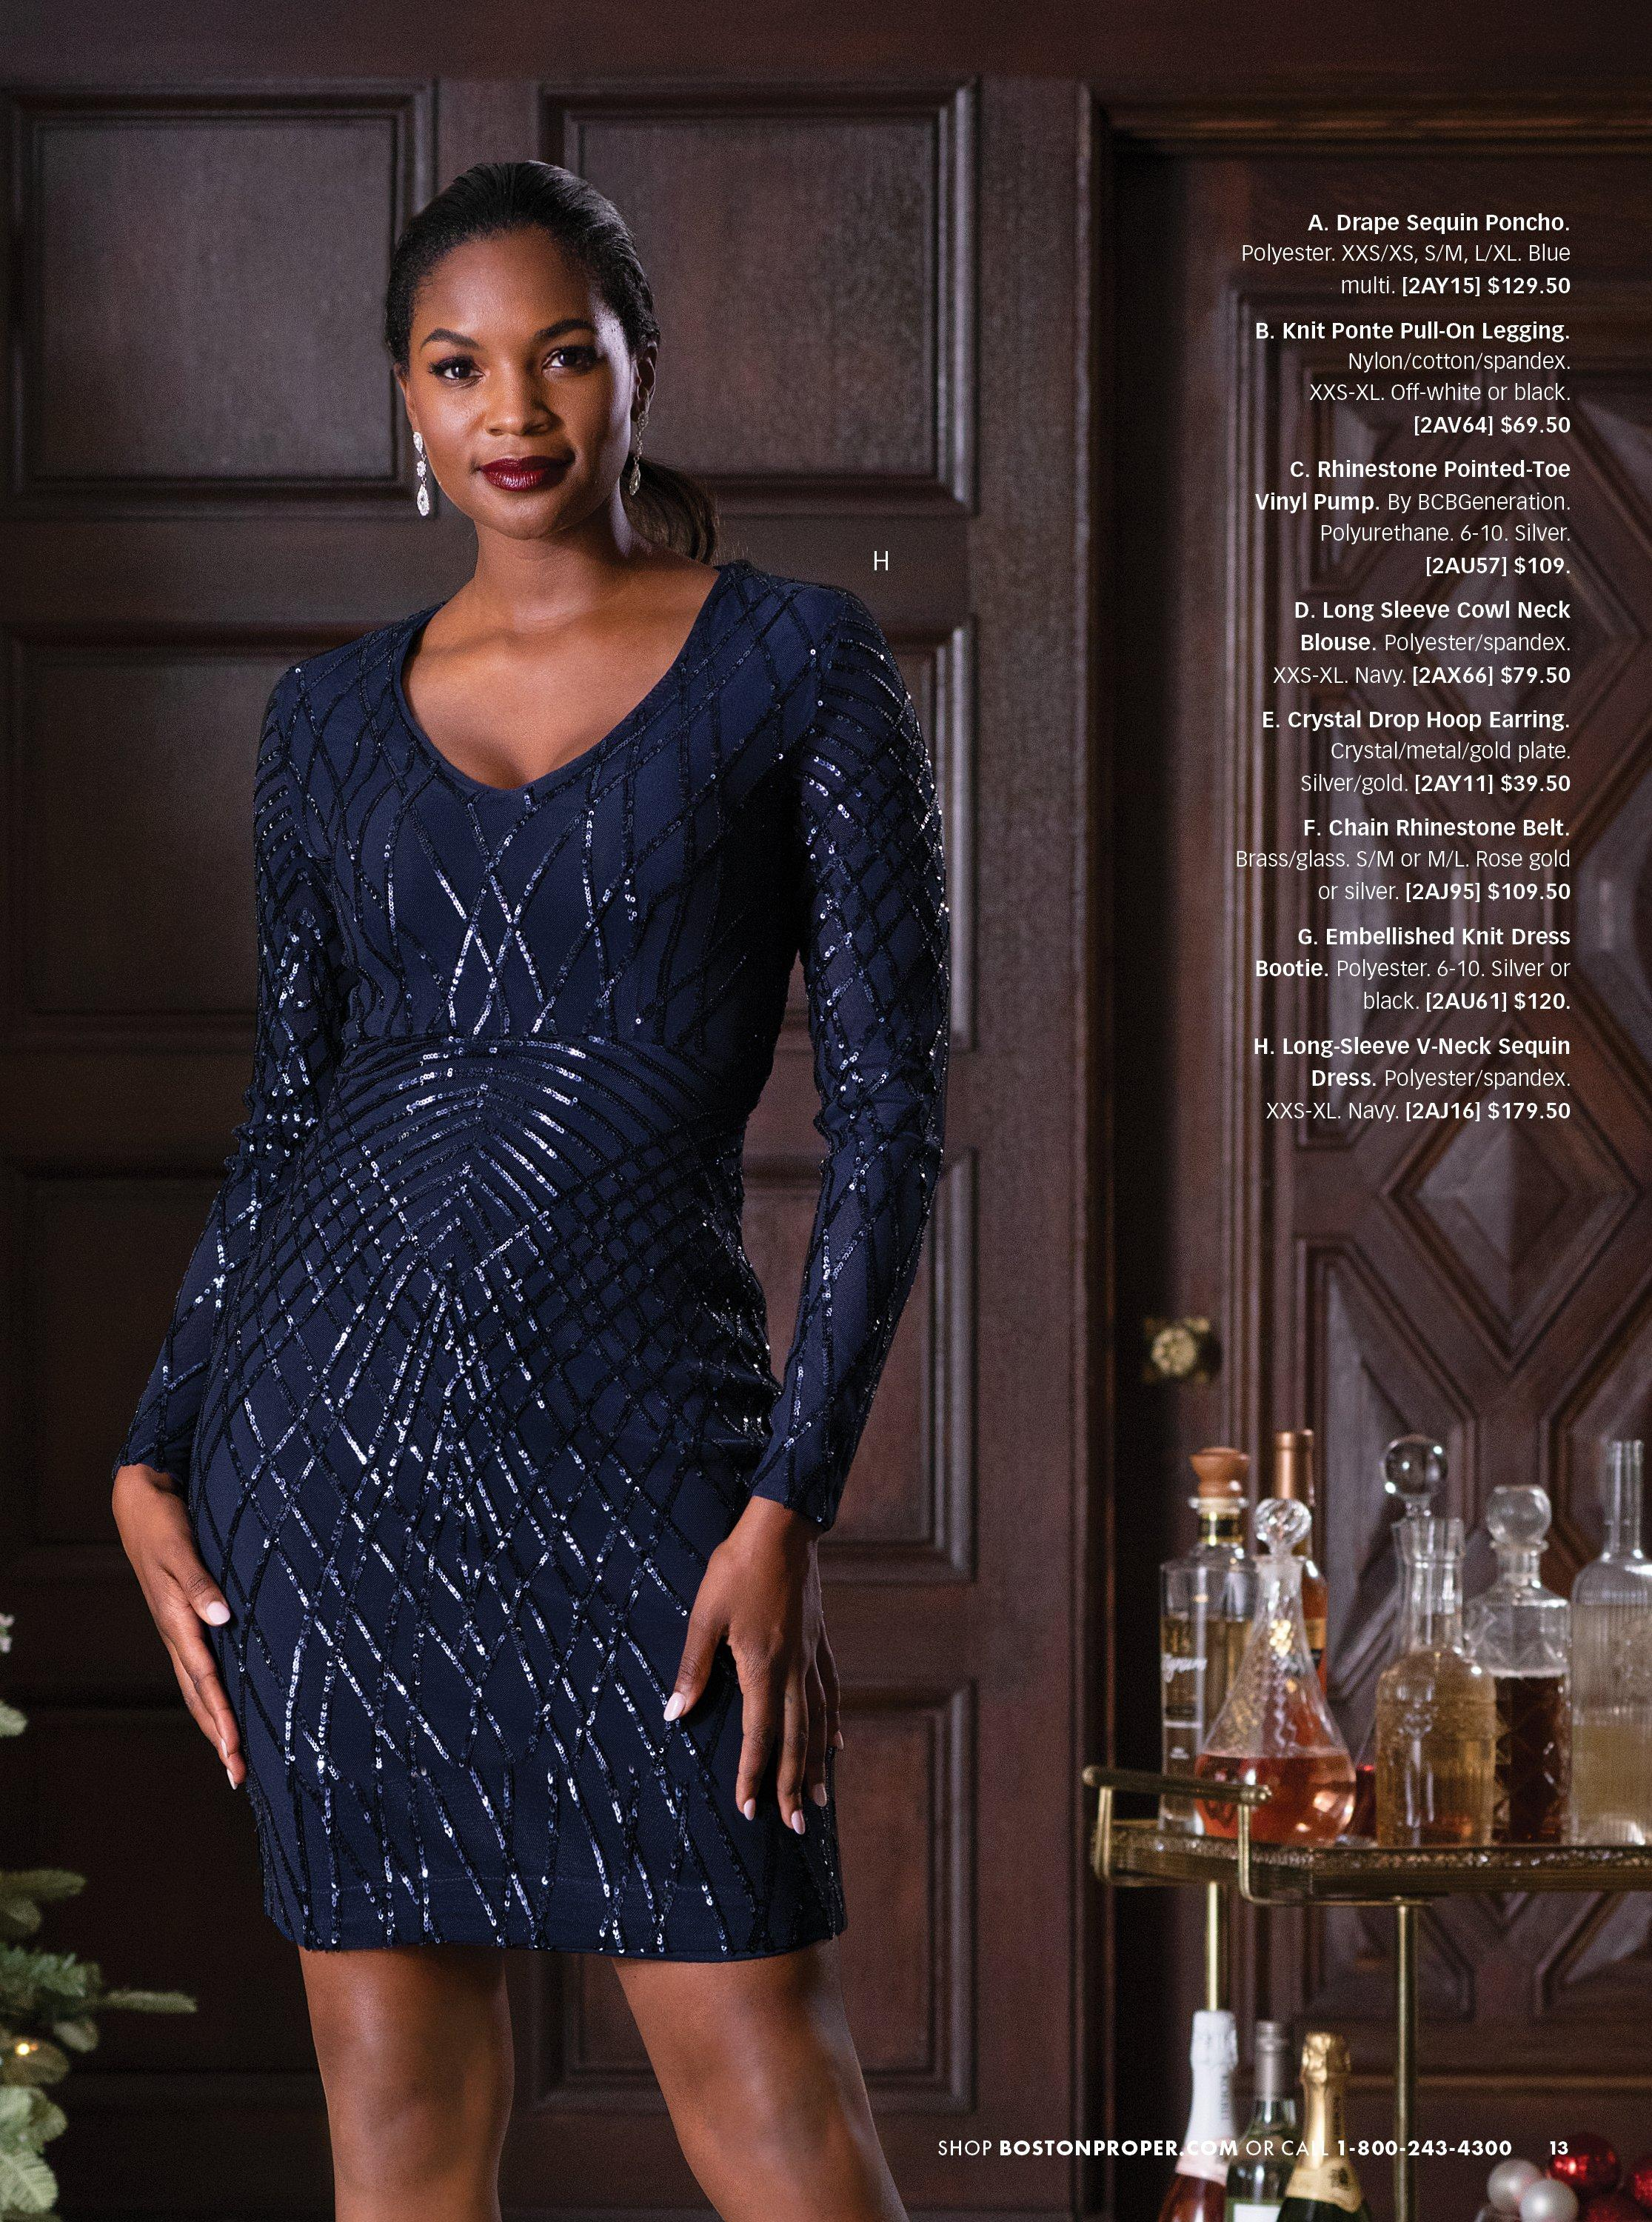 model wearing a navy sequin long-sleeve dress.